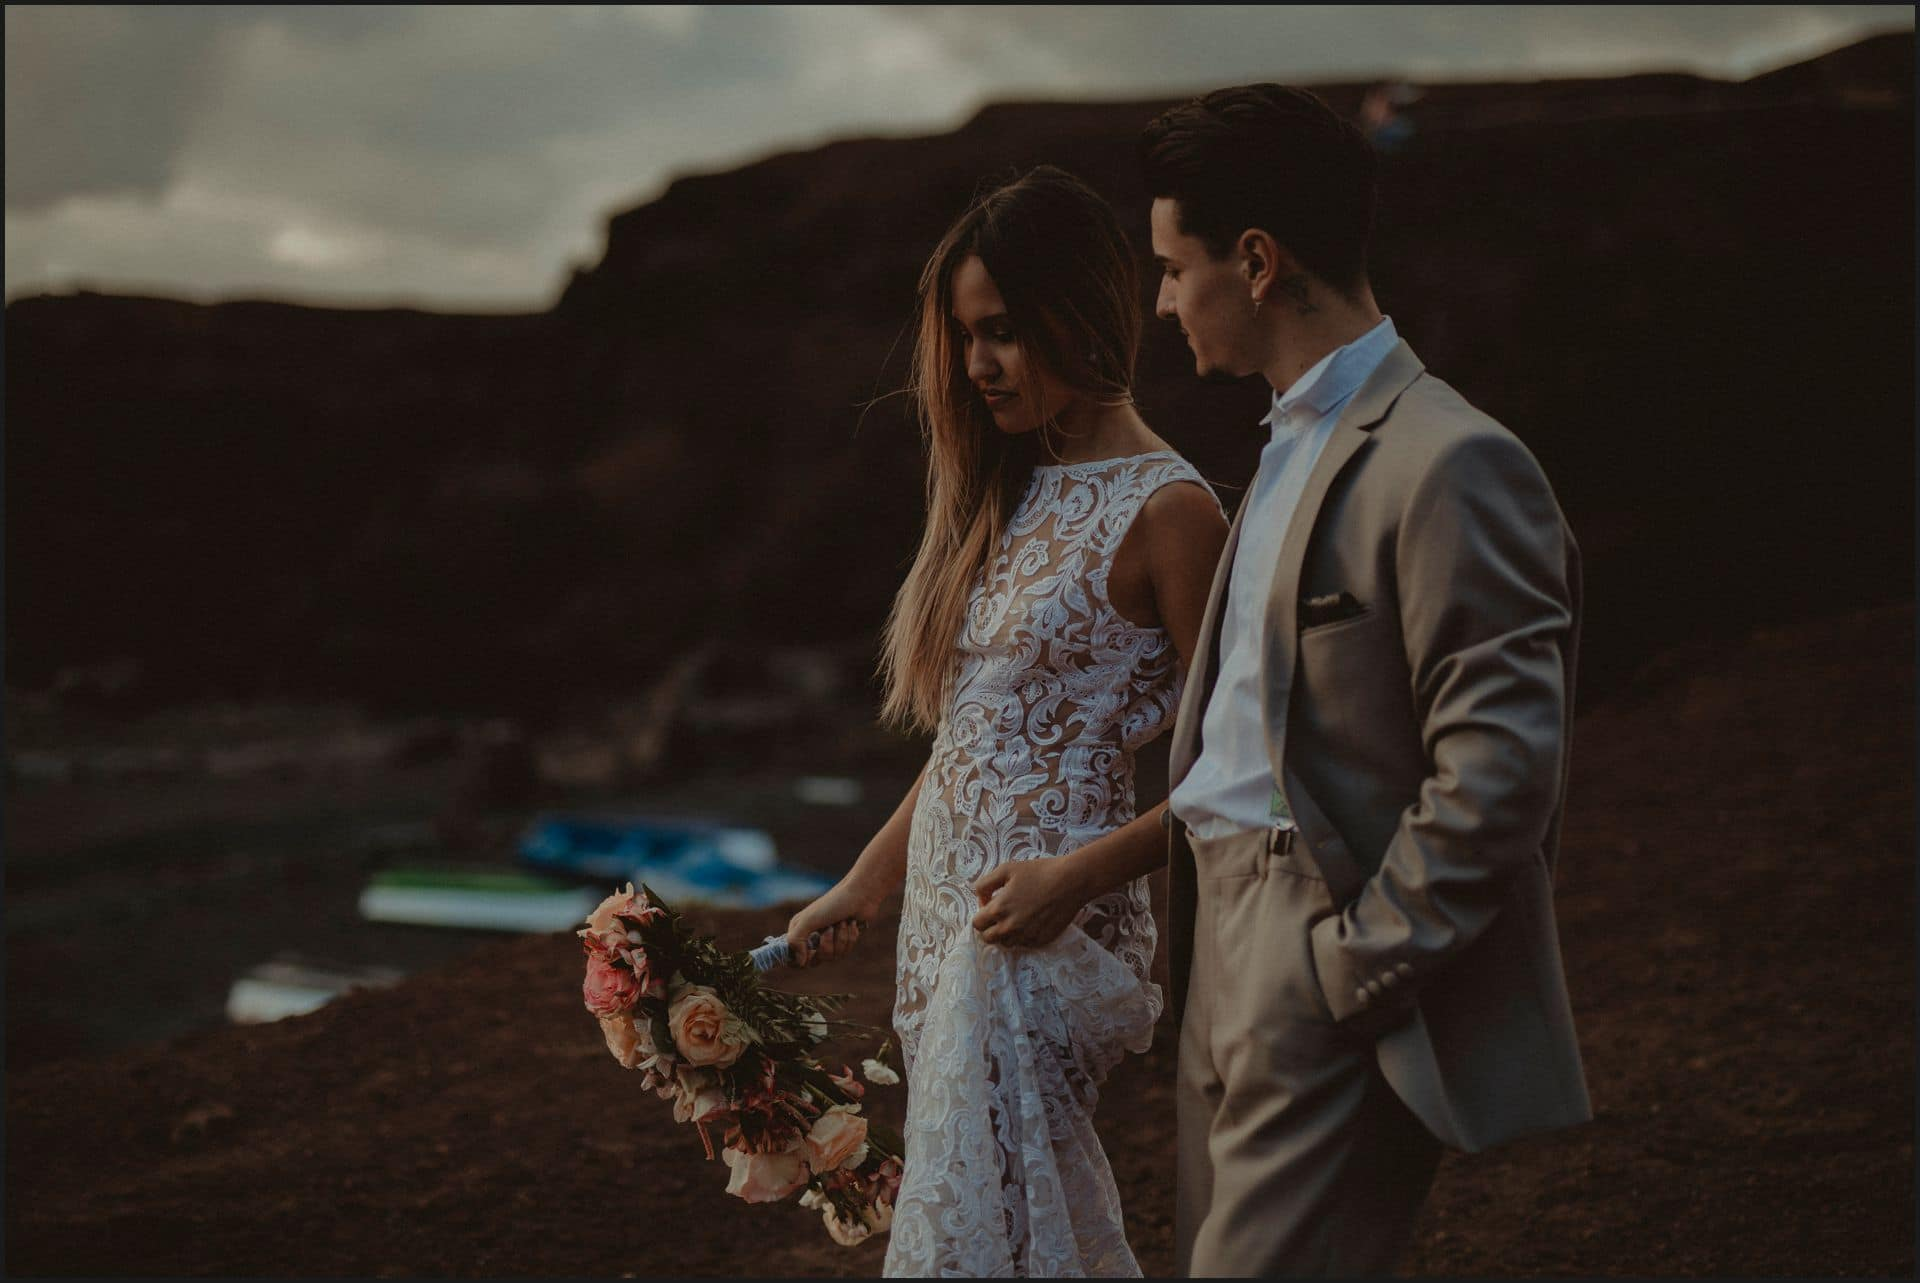 lanzarote, wedding, elopement, bride, groom, vulcan, adventure wedding, walking, el golfo